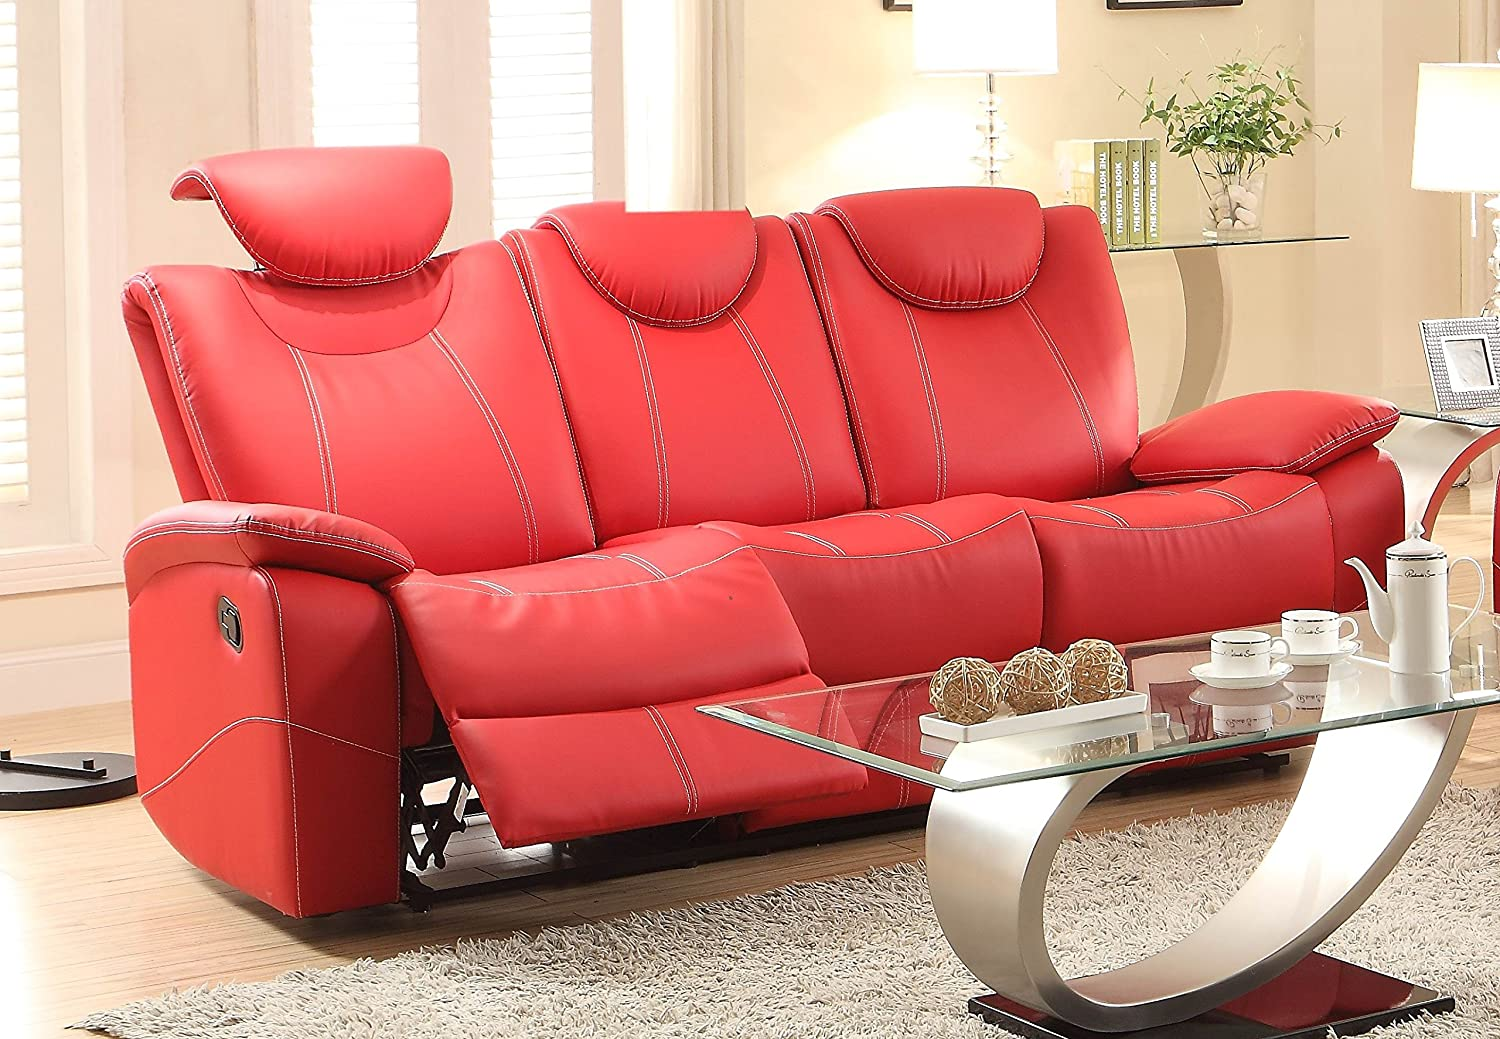 Homelegance Talbot Double Reclining Sofa in Red Leather